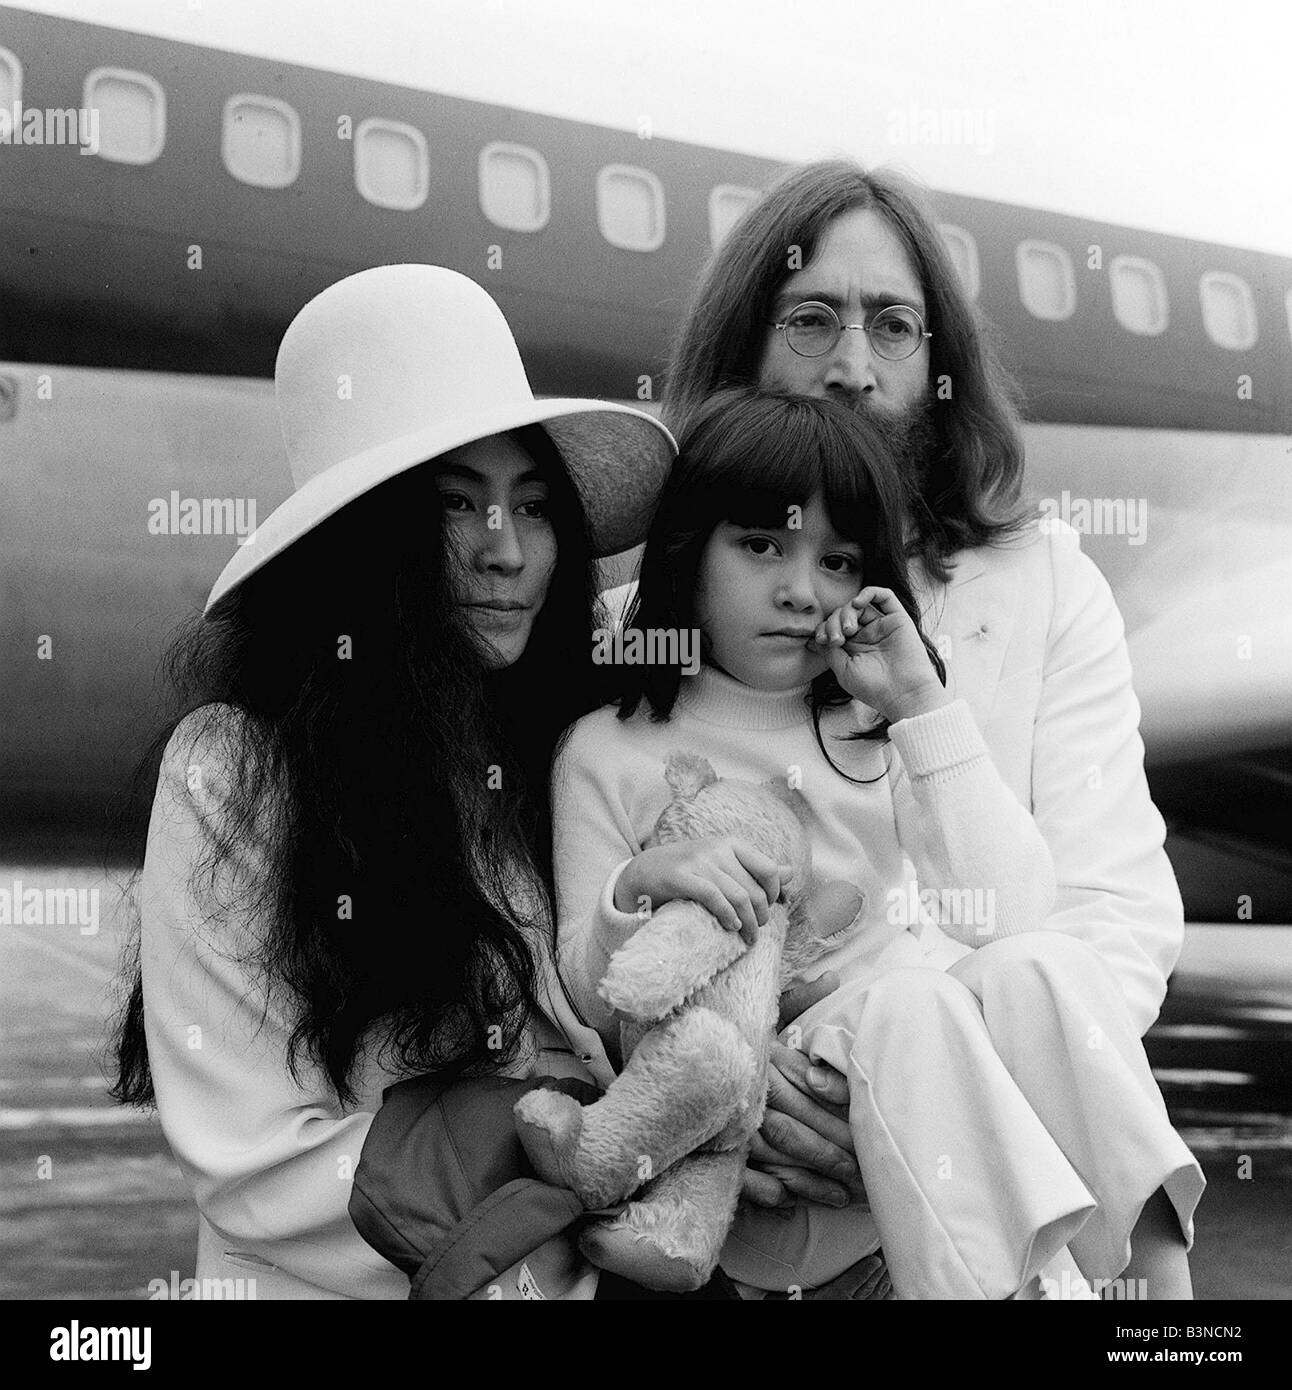 Lennon Ono Fly To Bahamas To Stage Second Bed In 50 Years Ago Onthisday Otd May 24 1969 Retronewser